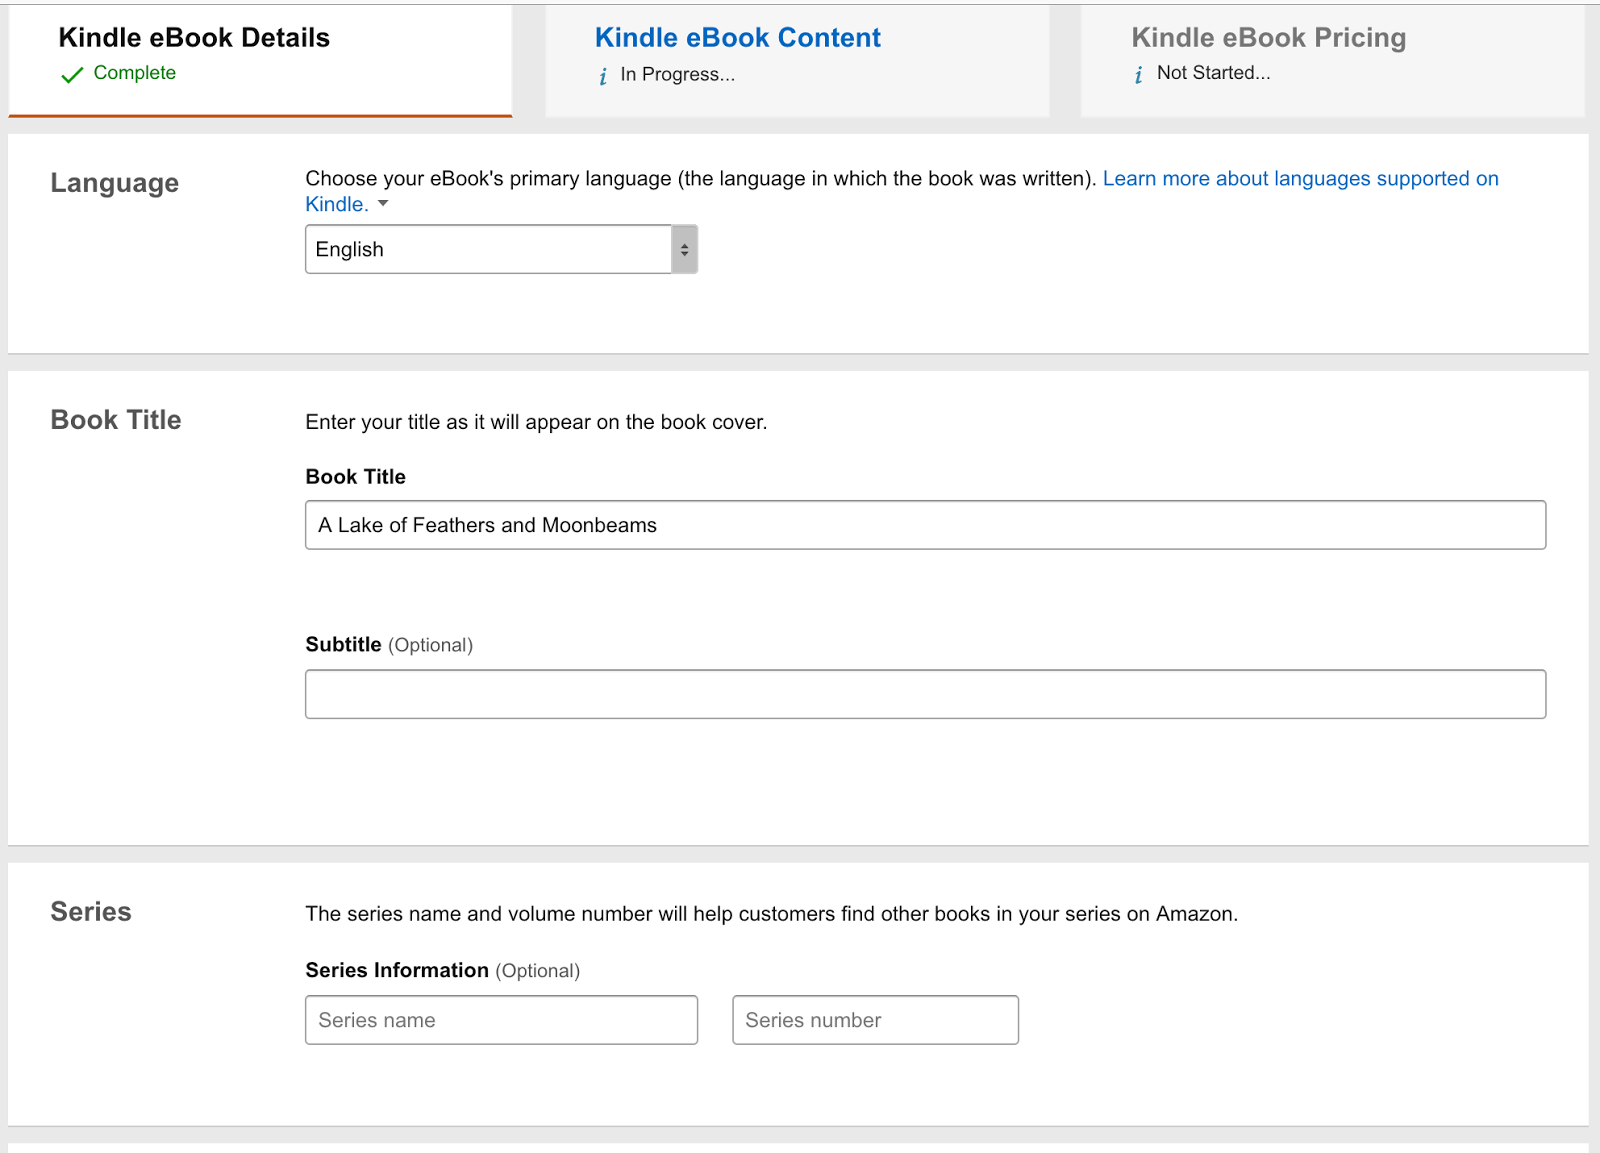 Ebook Details: A language drop down field, book title field, book sub title field, series name and series number fields.